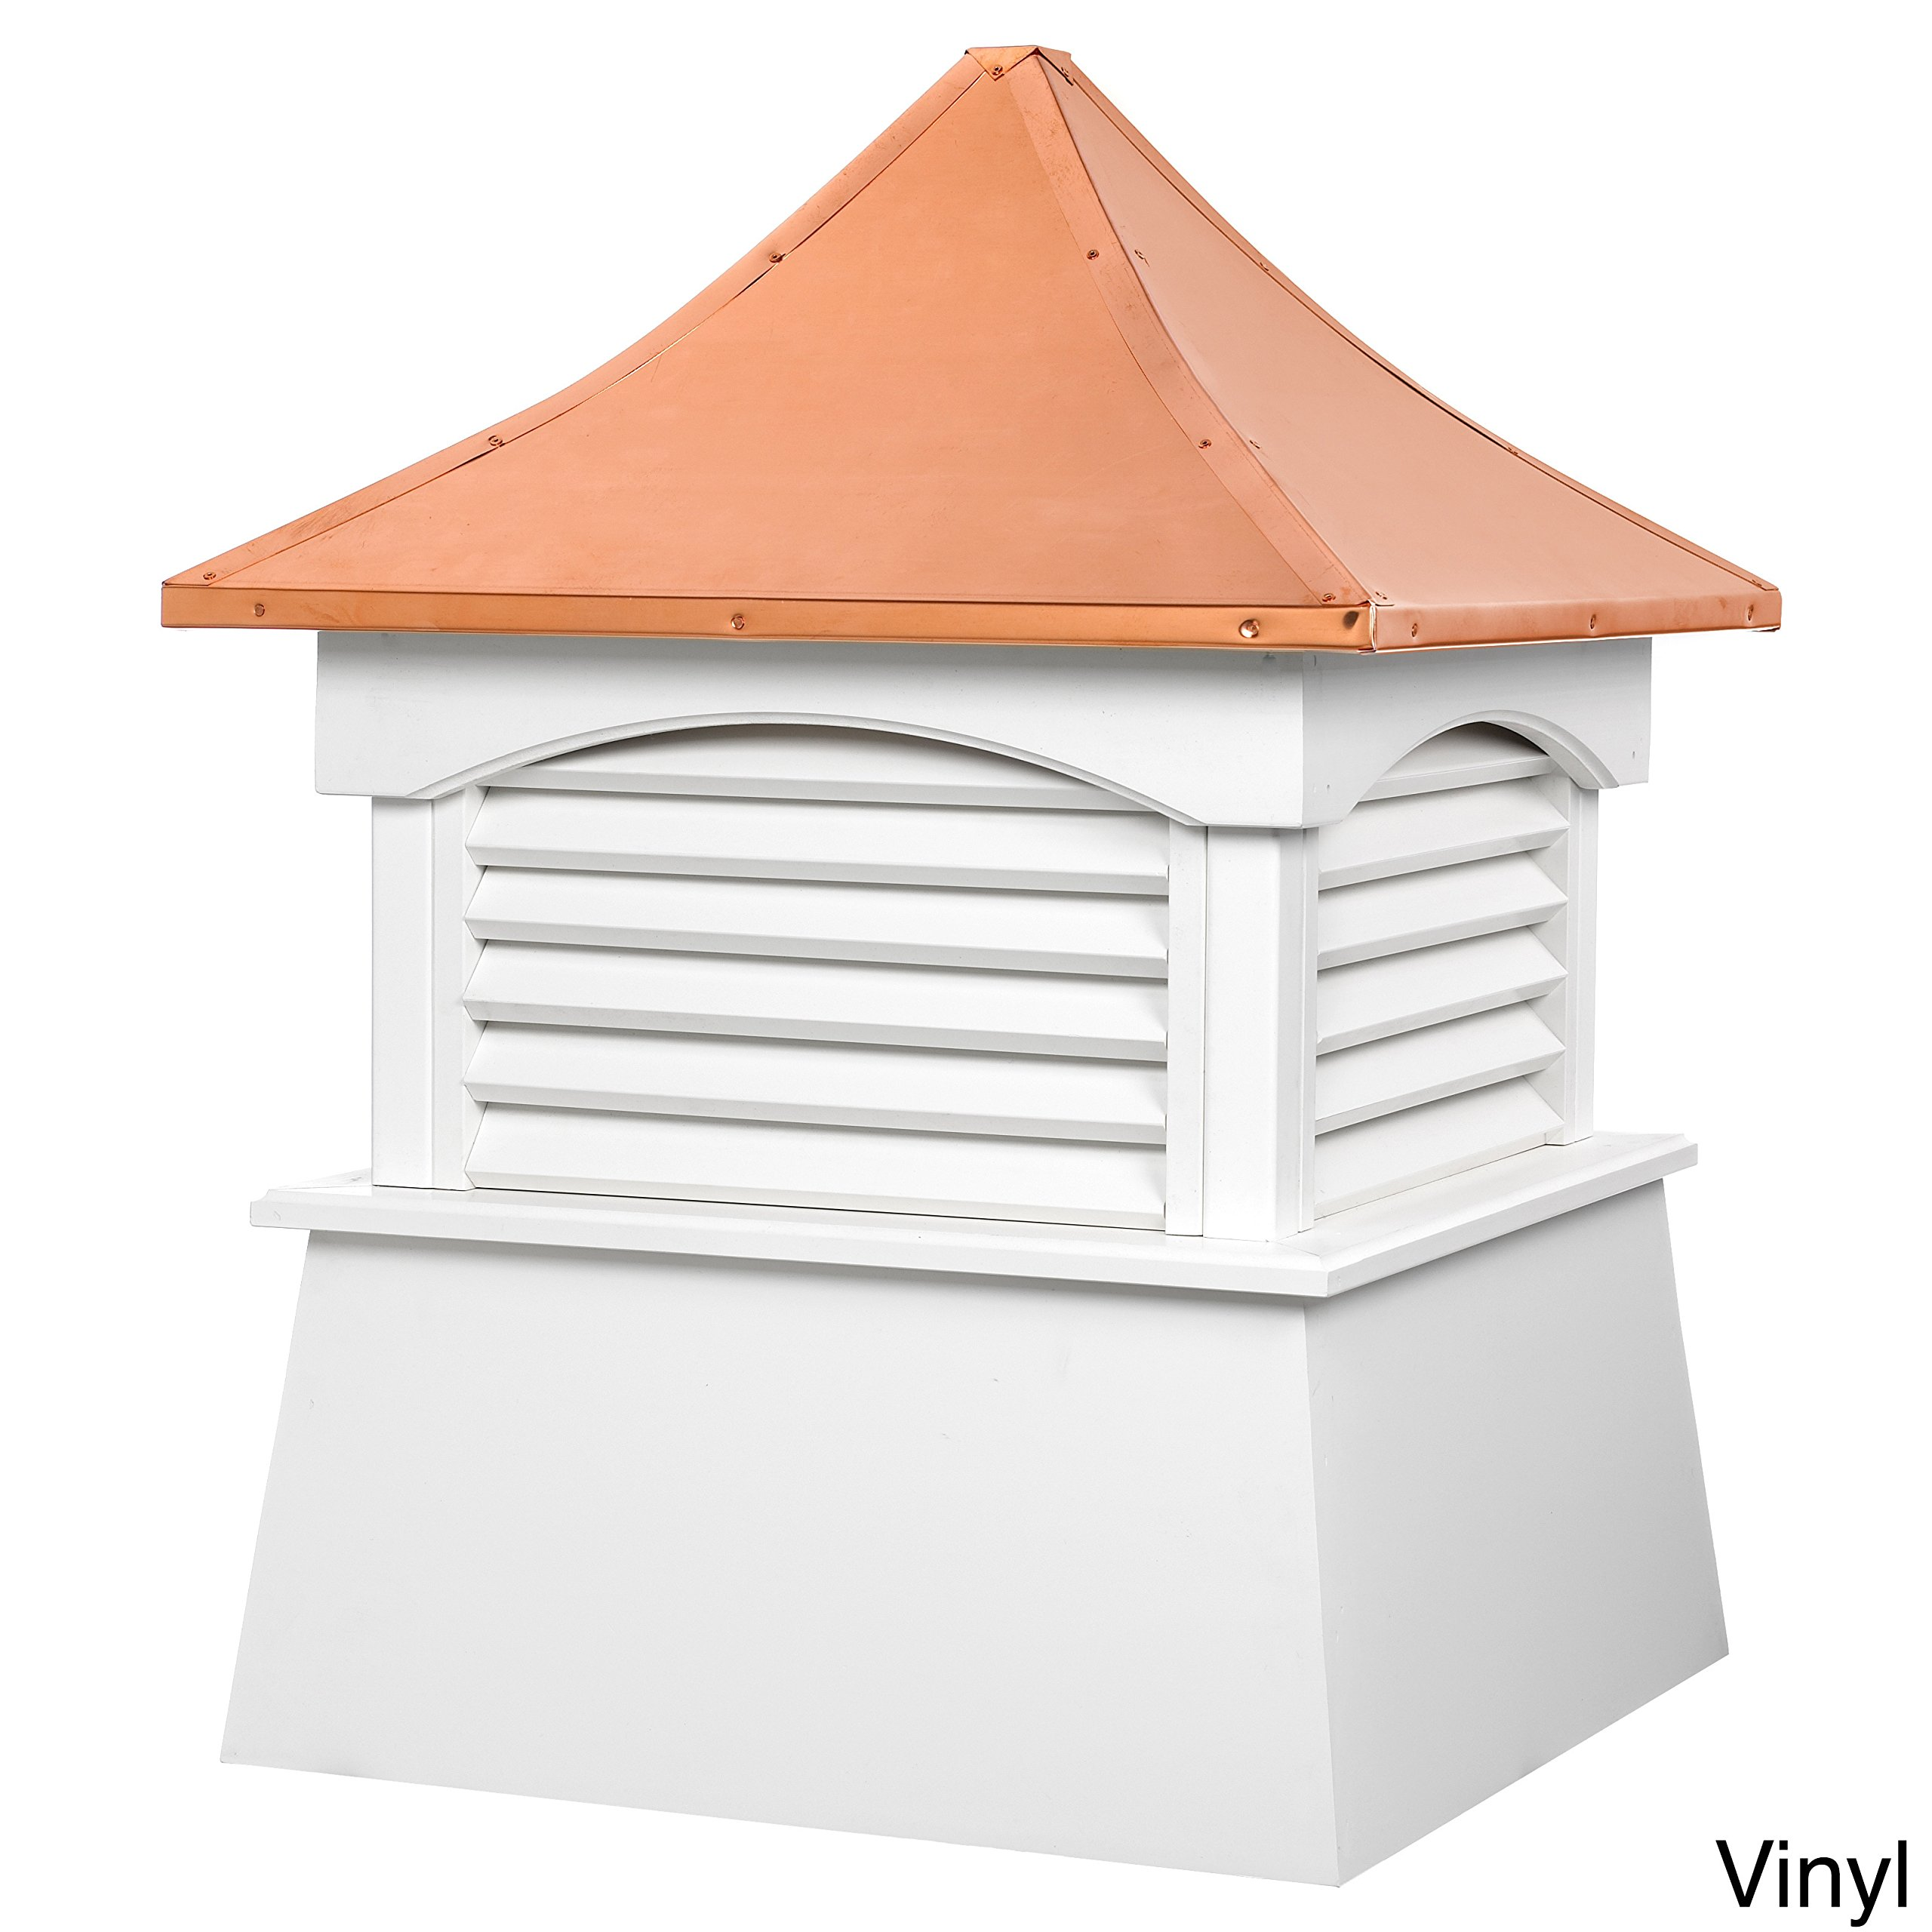 Good Directions Vinyl Coventry Louvered Cupola with Pure Copper Roof,  Maintenance Free Solid Cellular PVC Vinyl, 18'' x 24'', Quick Ship, Reinforced Roof and Louvers, Cupolas by Good Directions